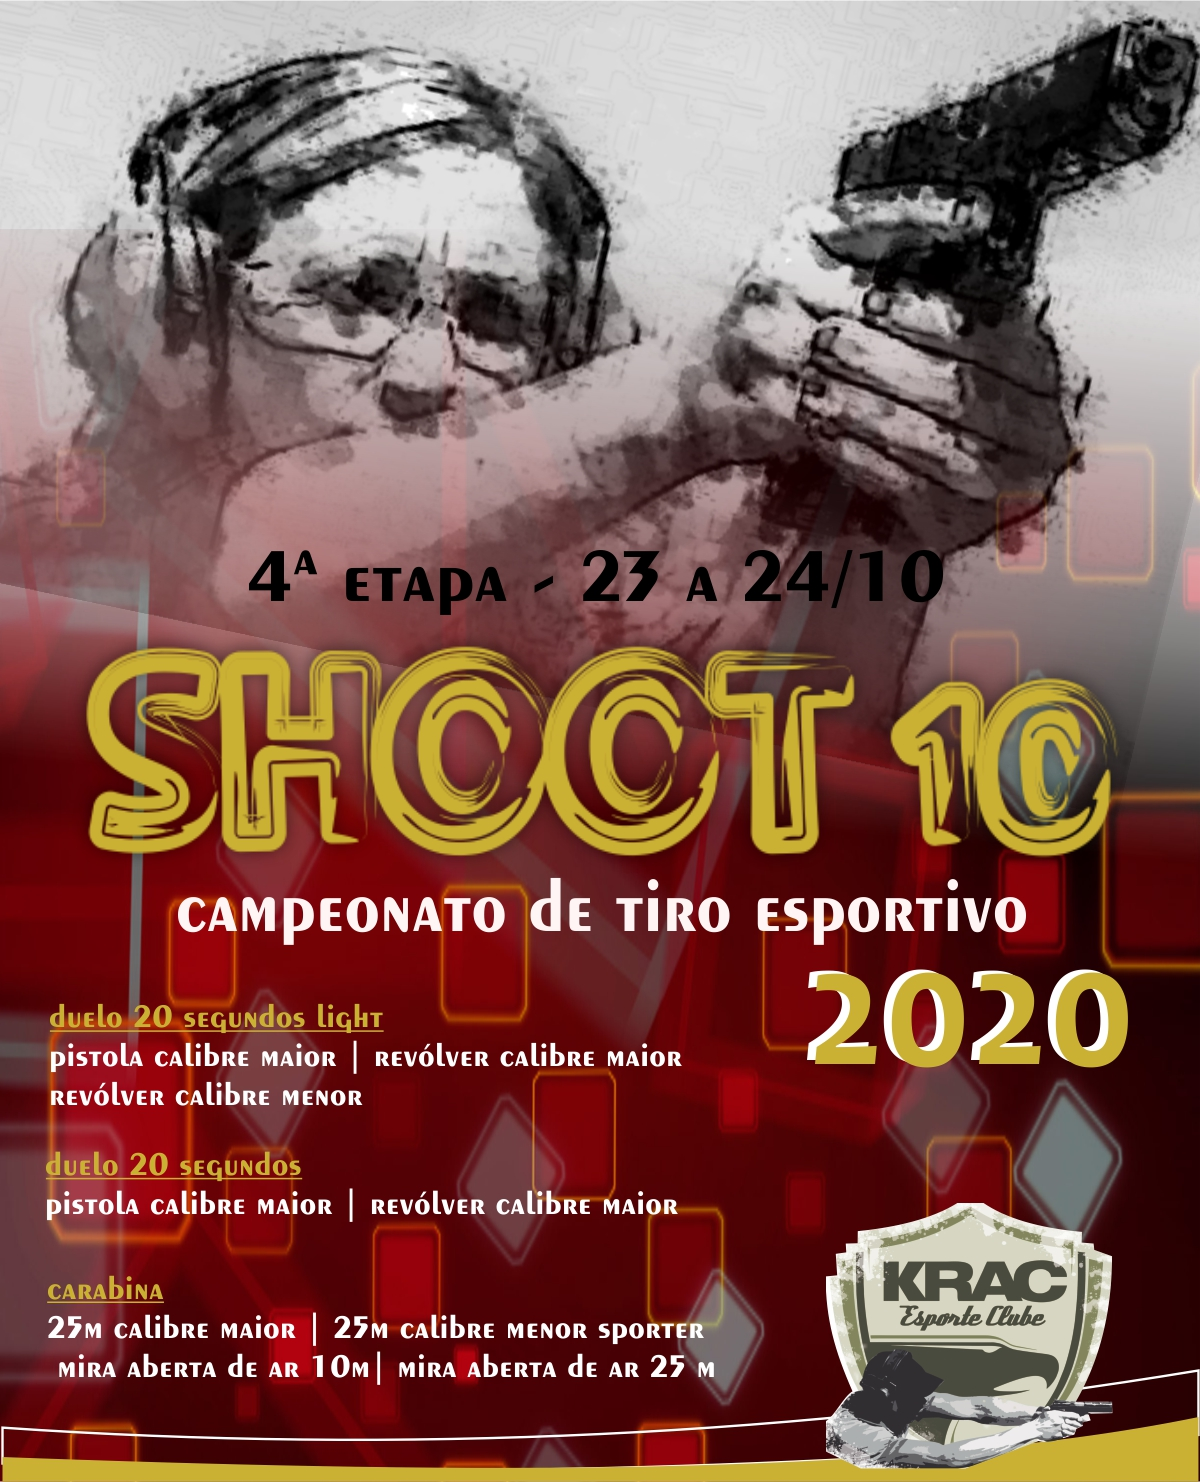 Krac_2020_Shoot 10_4ª Etapa_Flyer zap